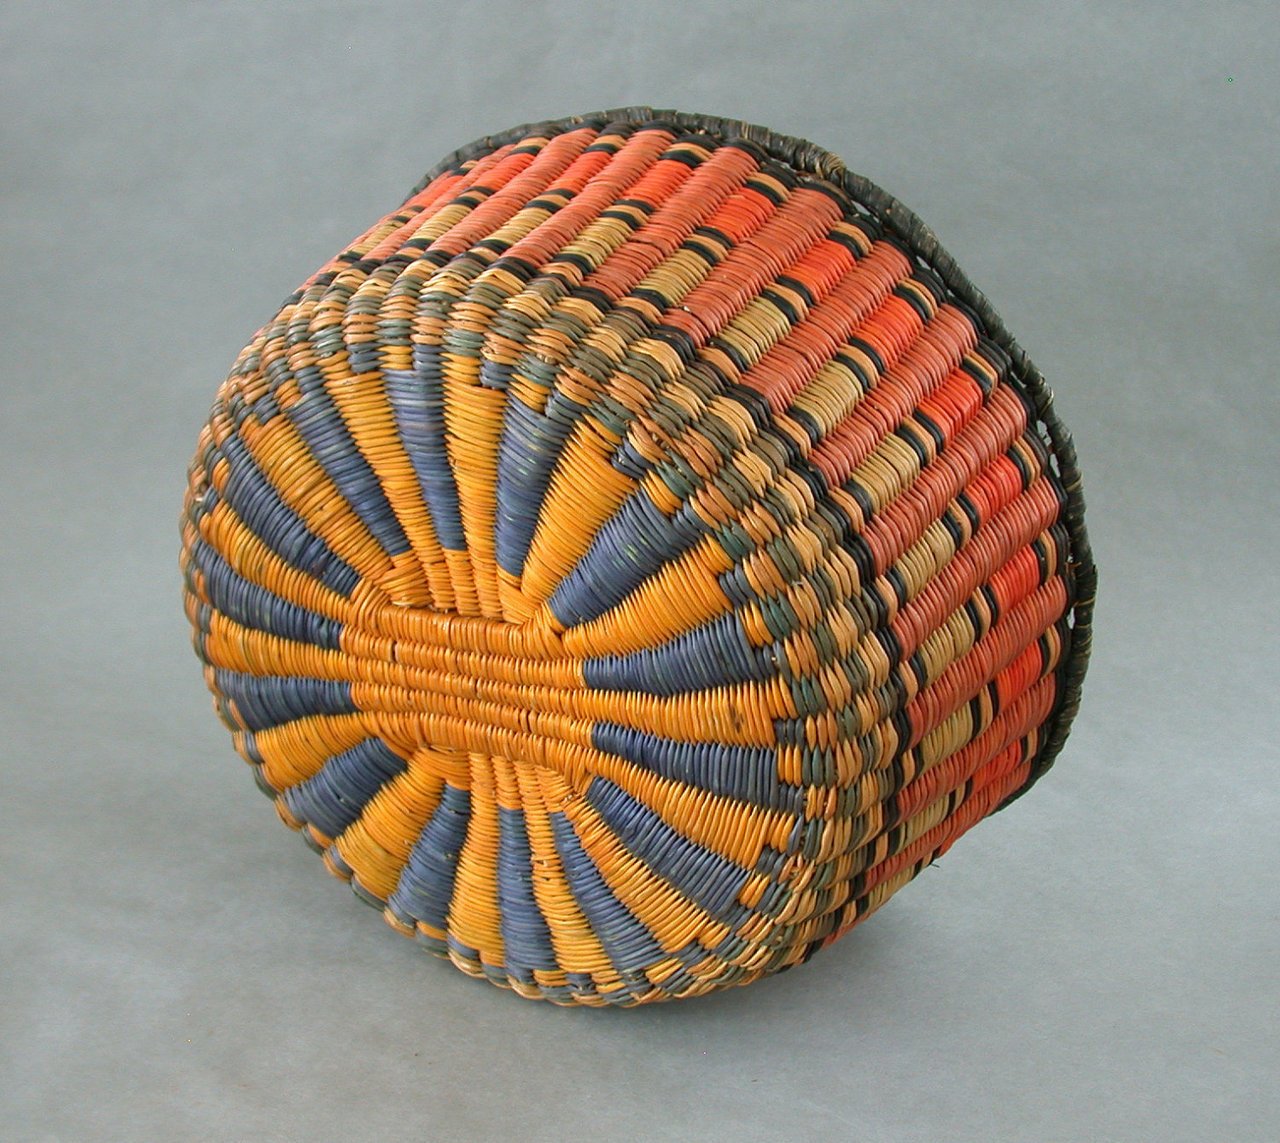 Hopi basket weaving